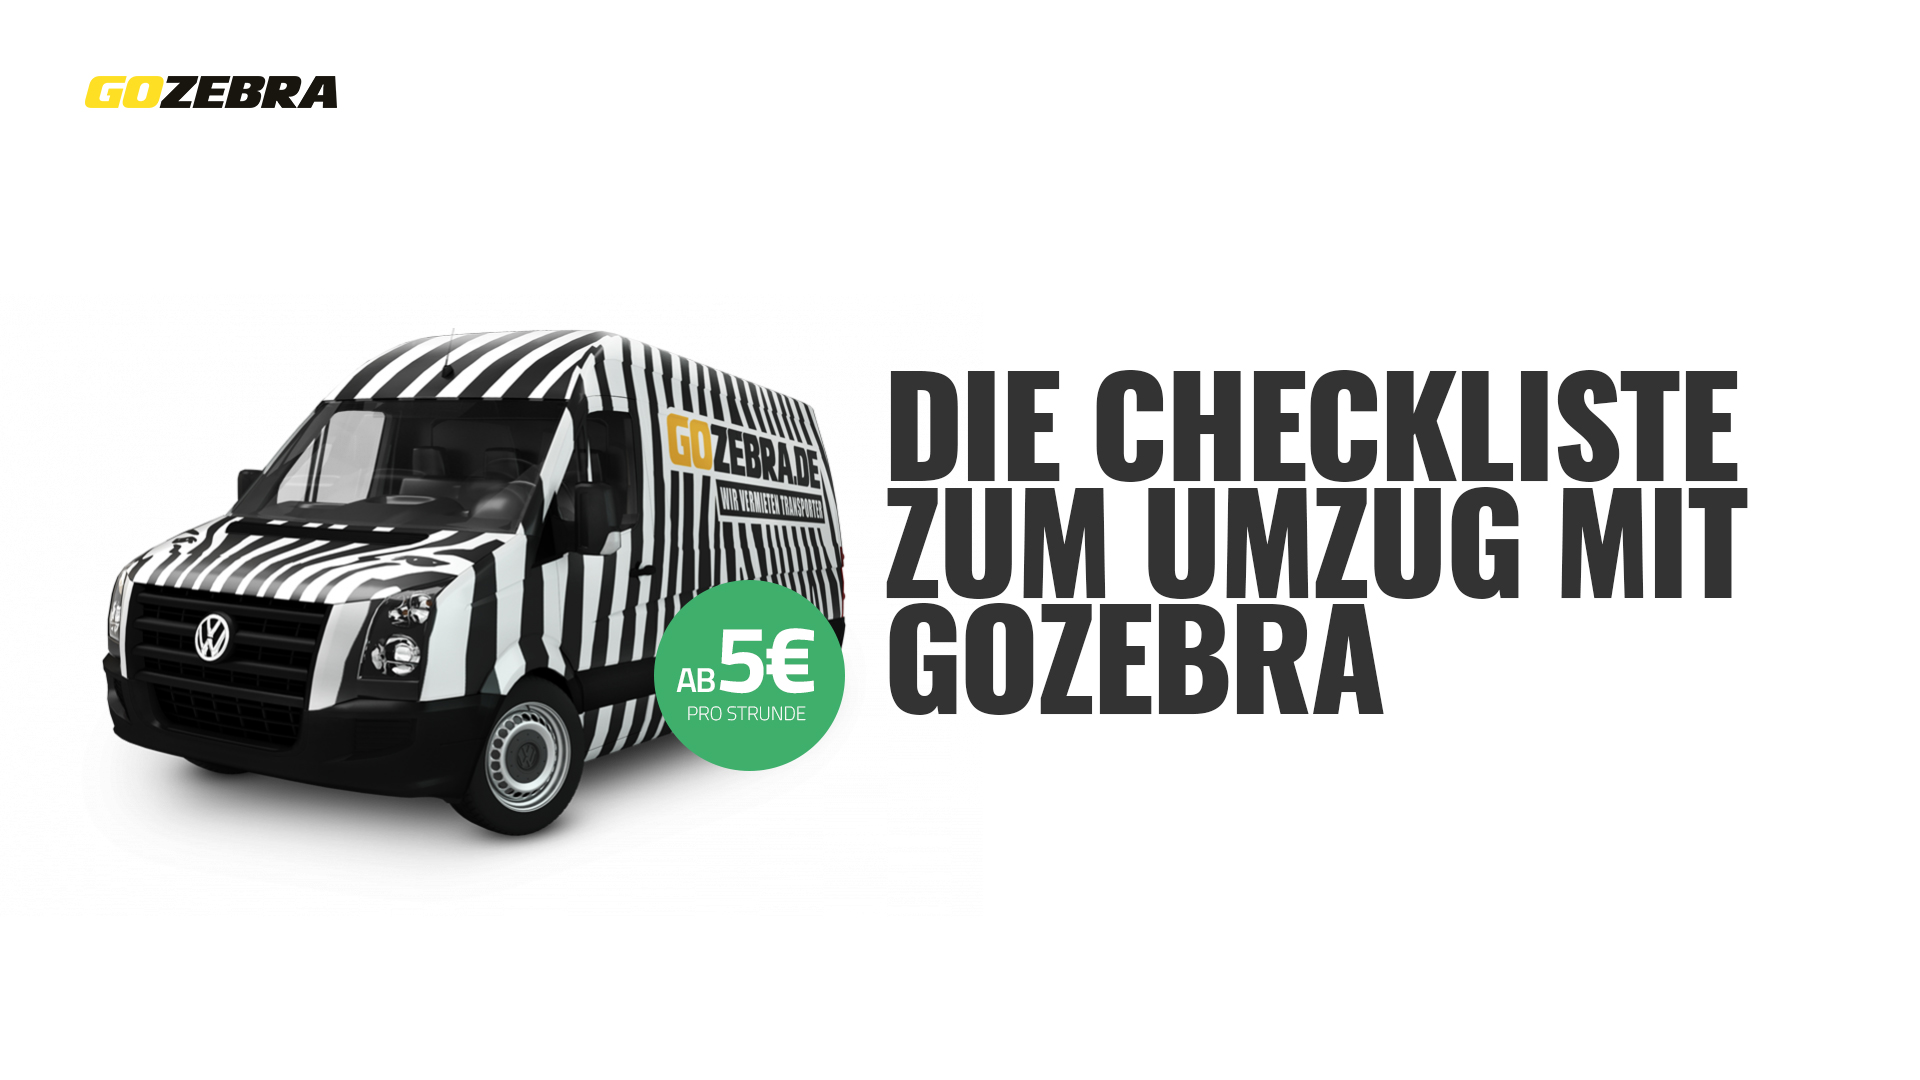 umzug checkliste transporter mieten bei gozebra. Black Bedroom Furniture Sets. Home Design Ideas